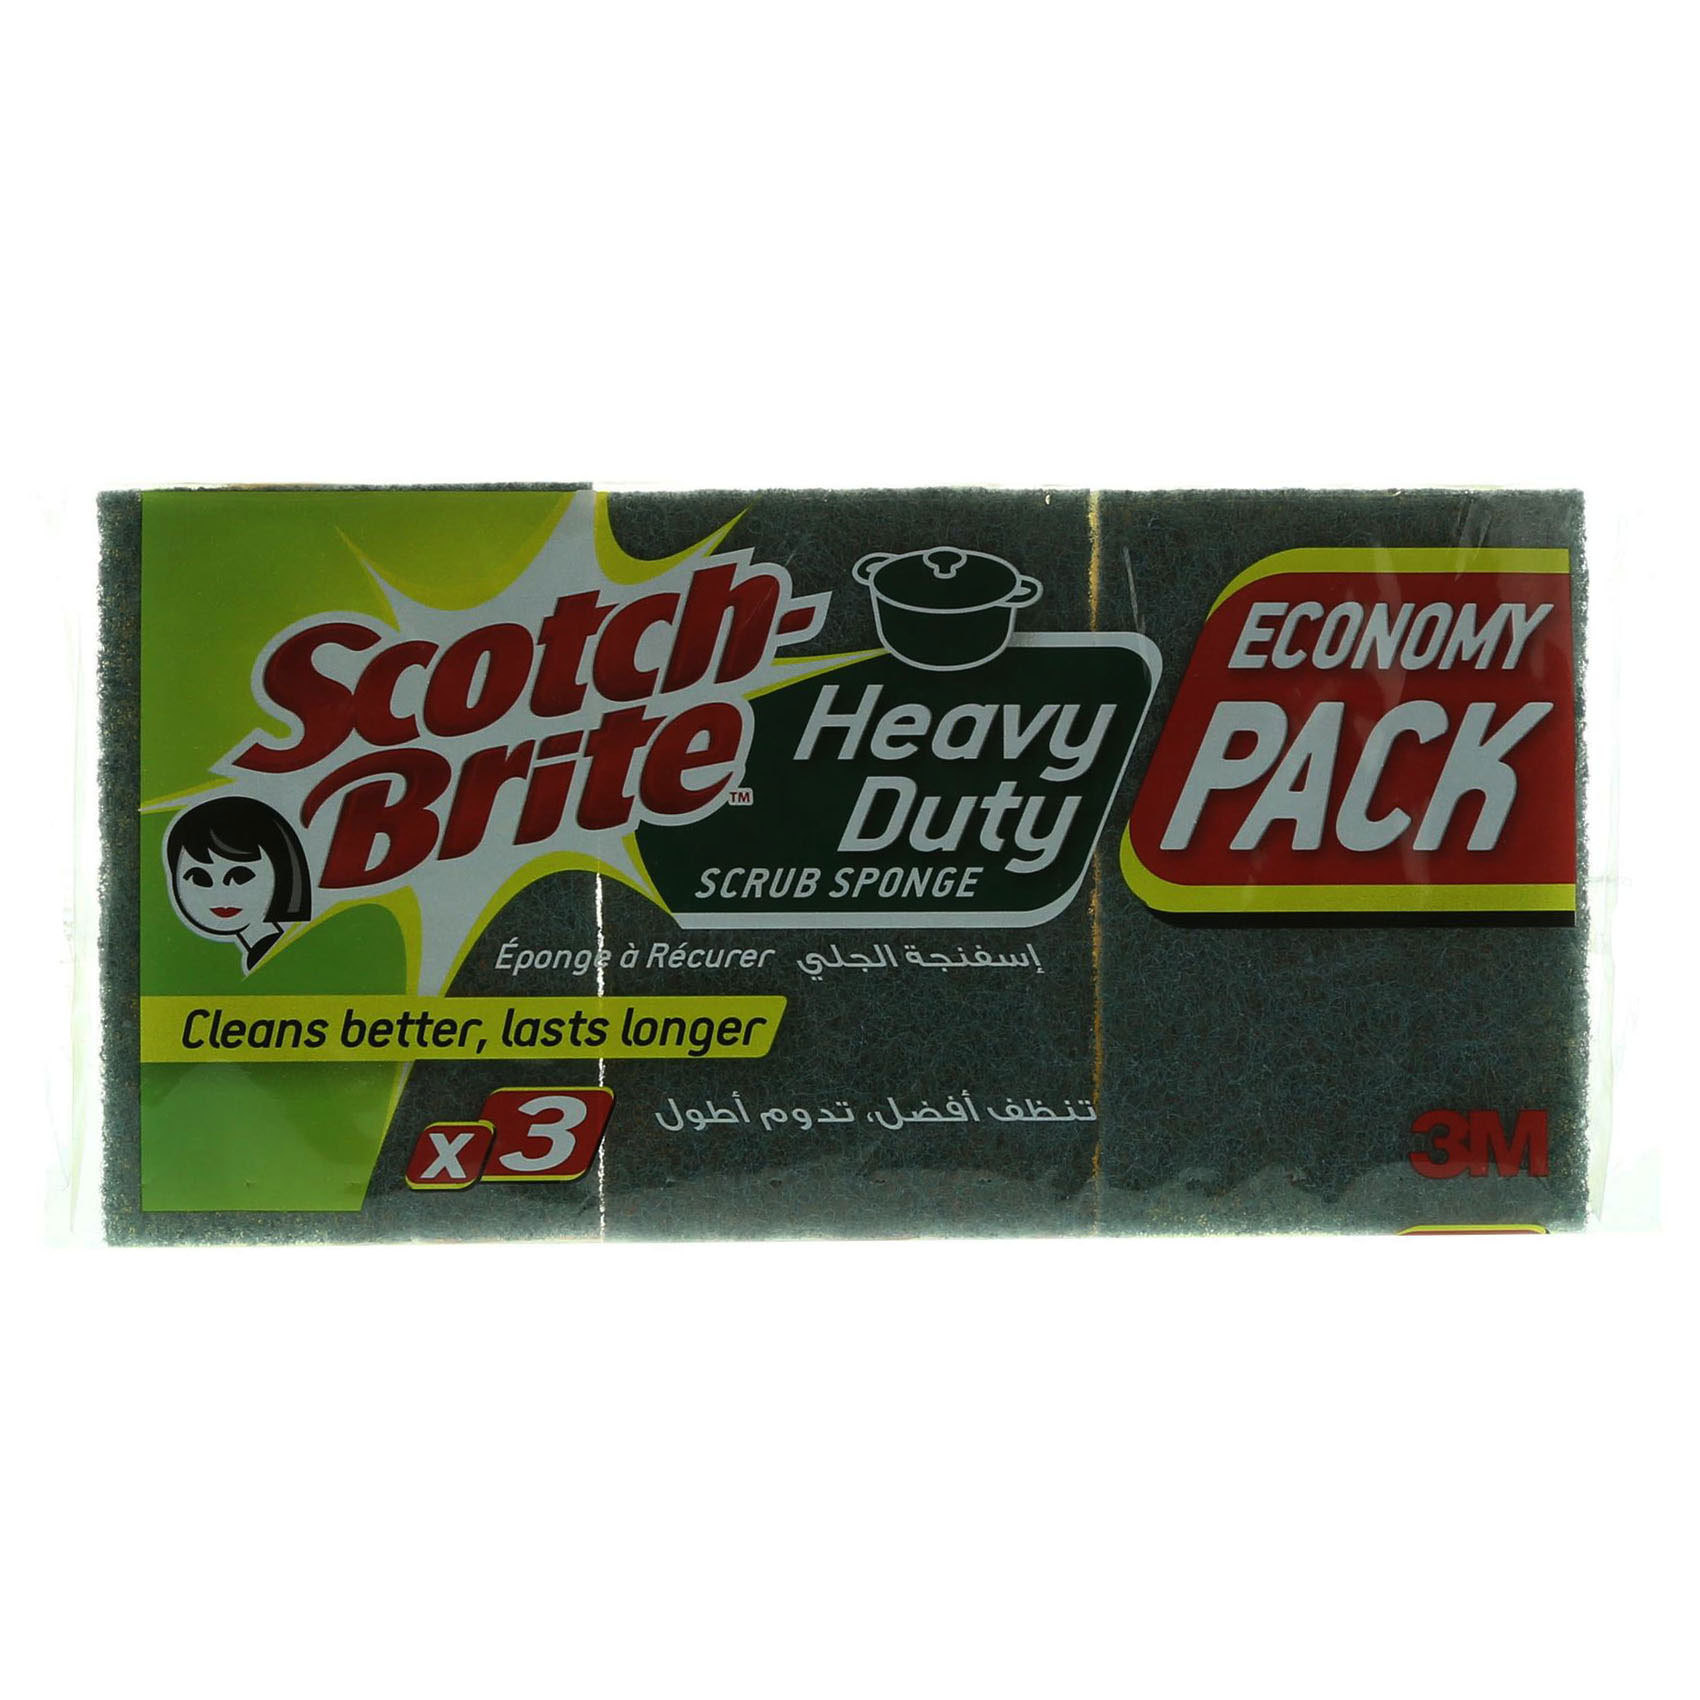 SCOTCH BRITE SCR/SPG SMALL X3